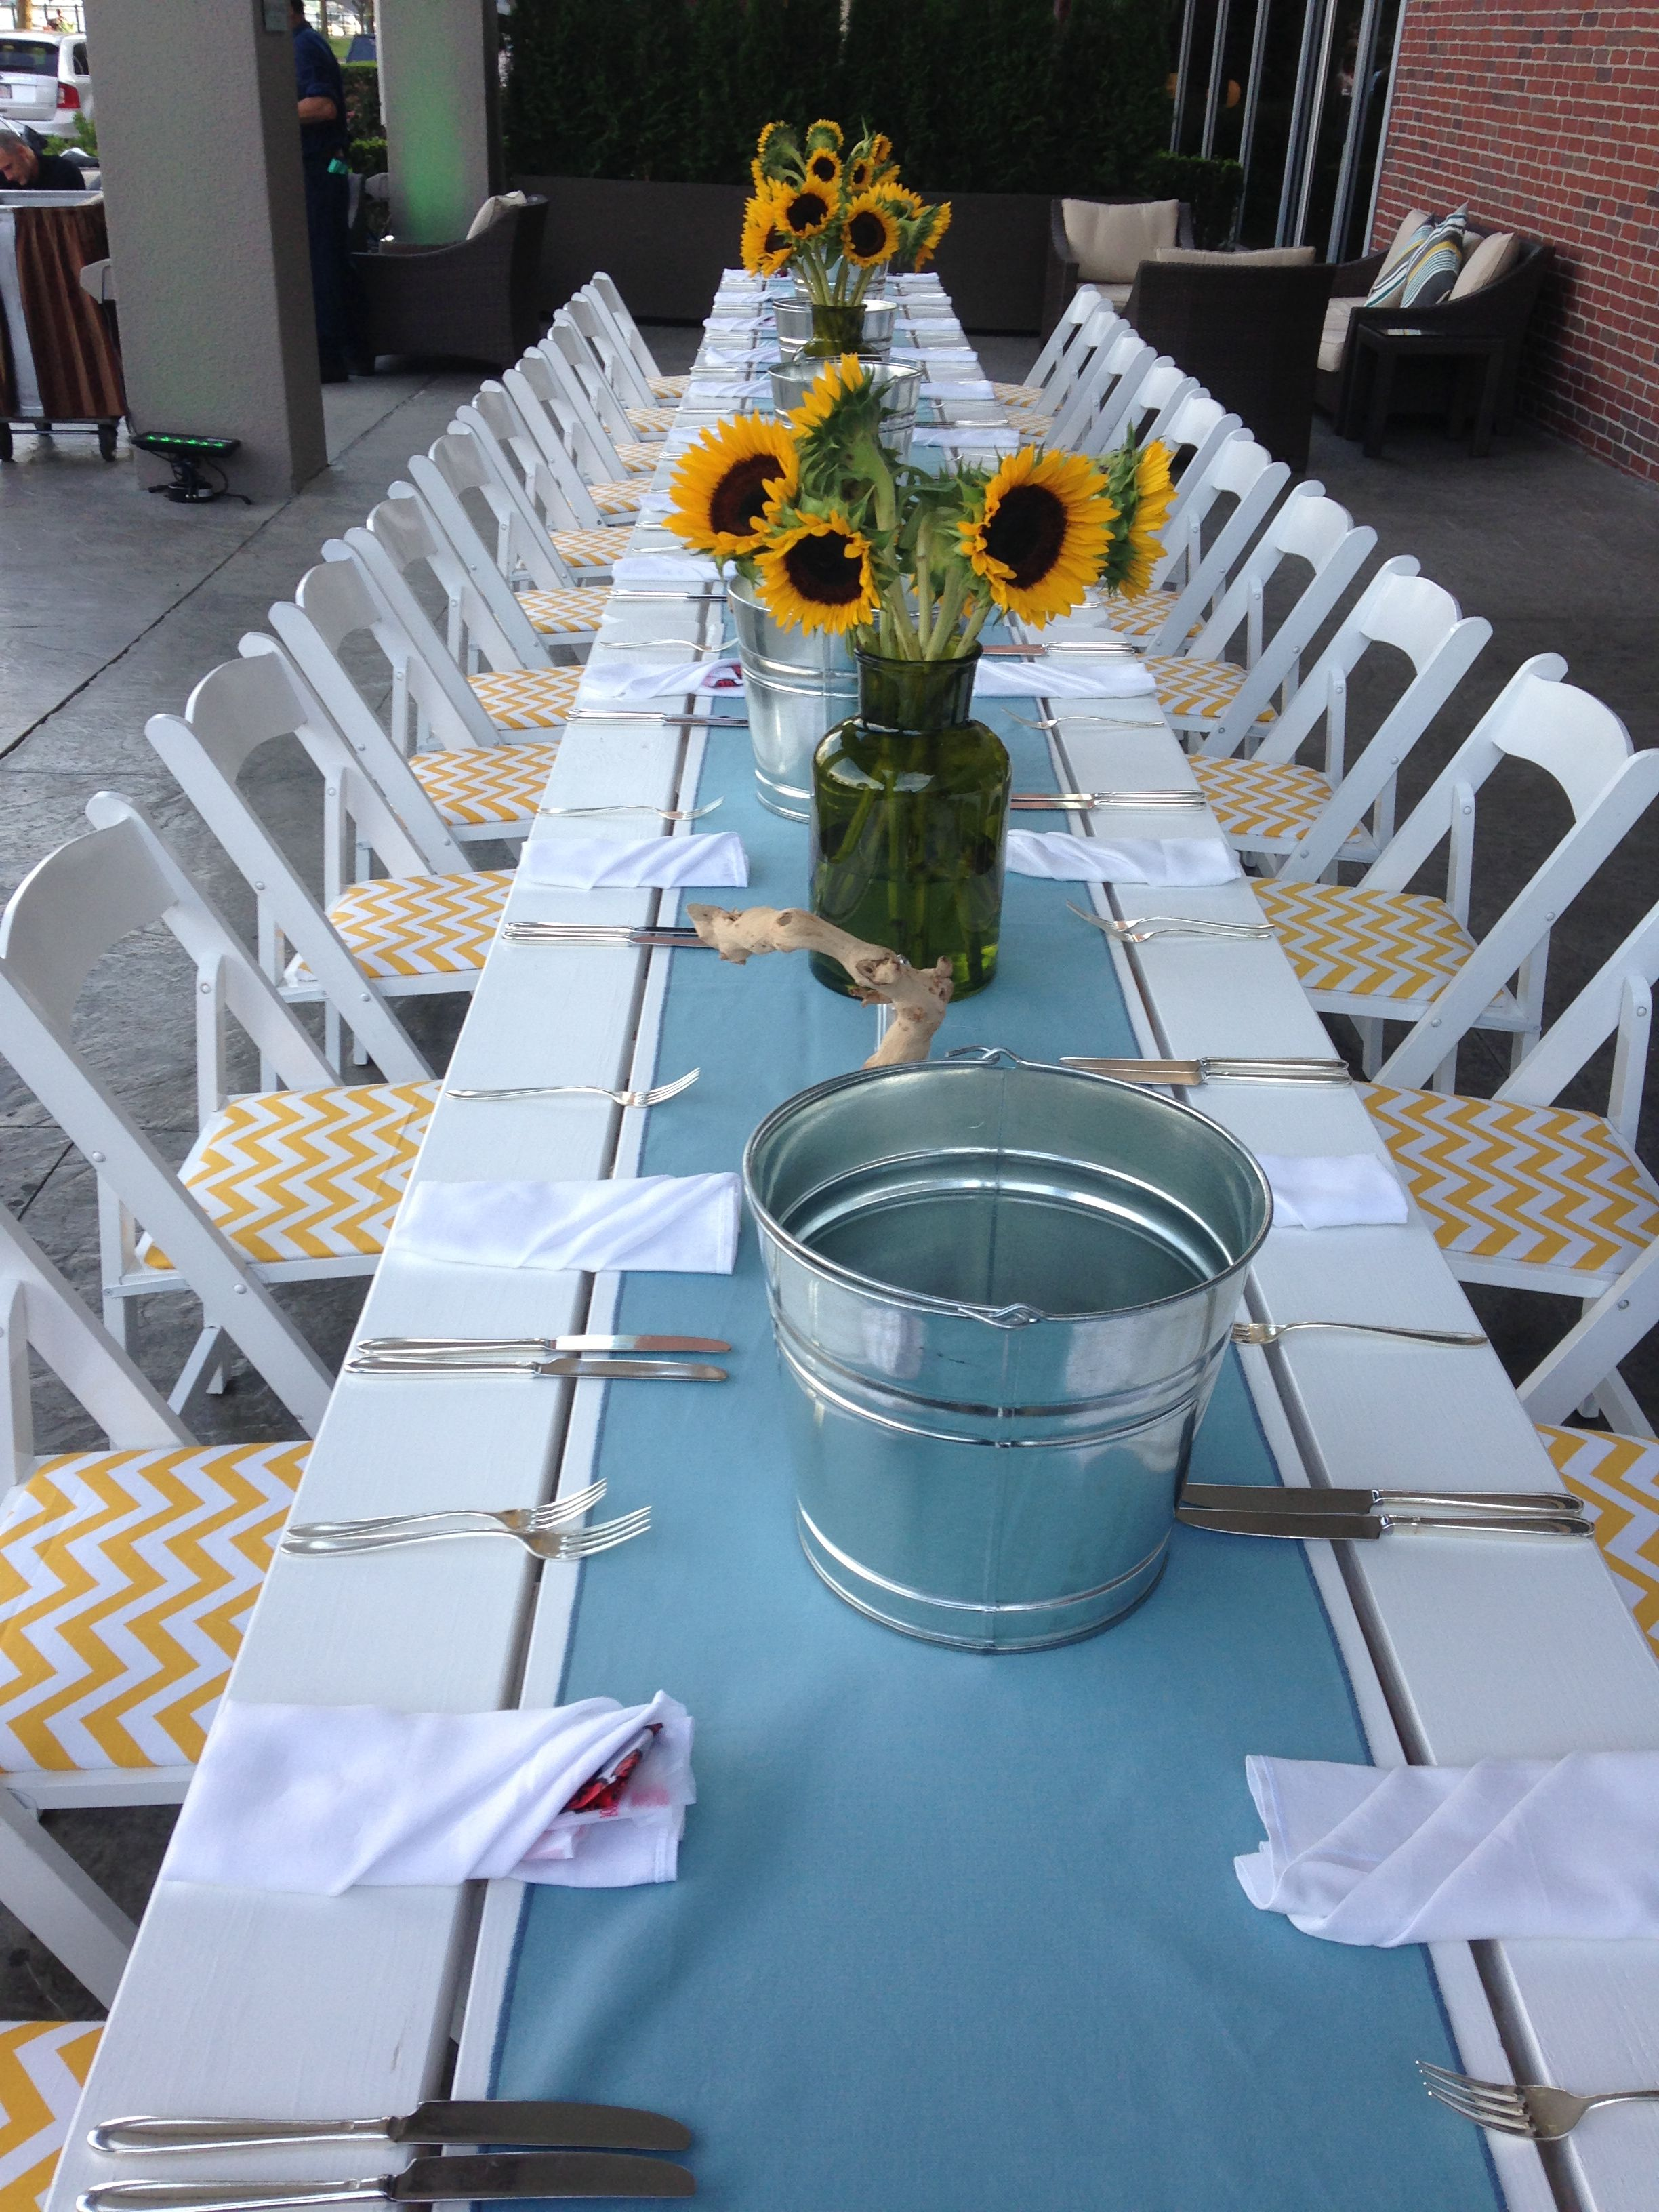 Captivating Clam Bake Decor   The Royal Sonesta Hotel Boston Offers Clam Bakes On Our  Riverside Terrace